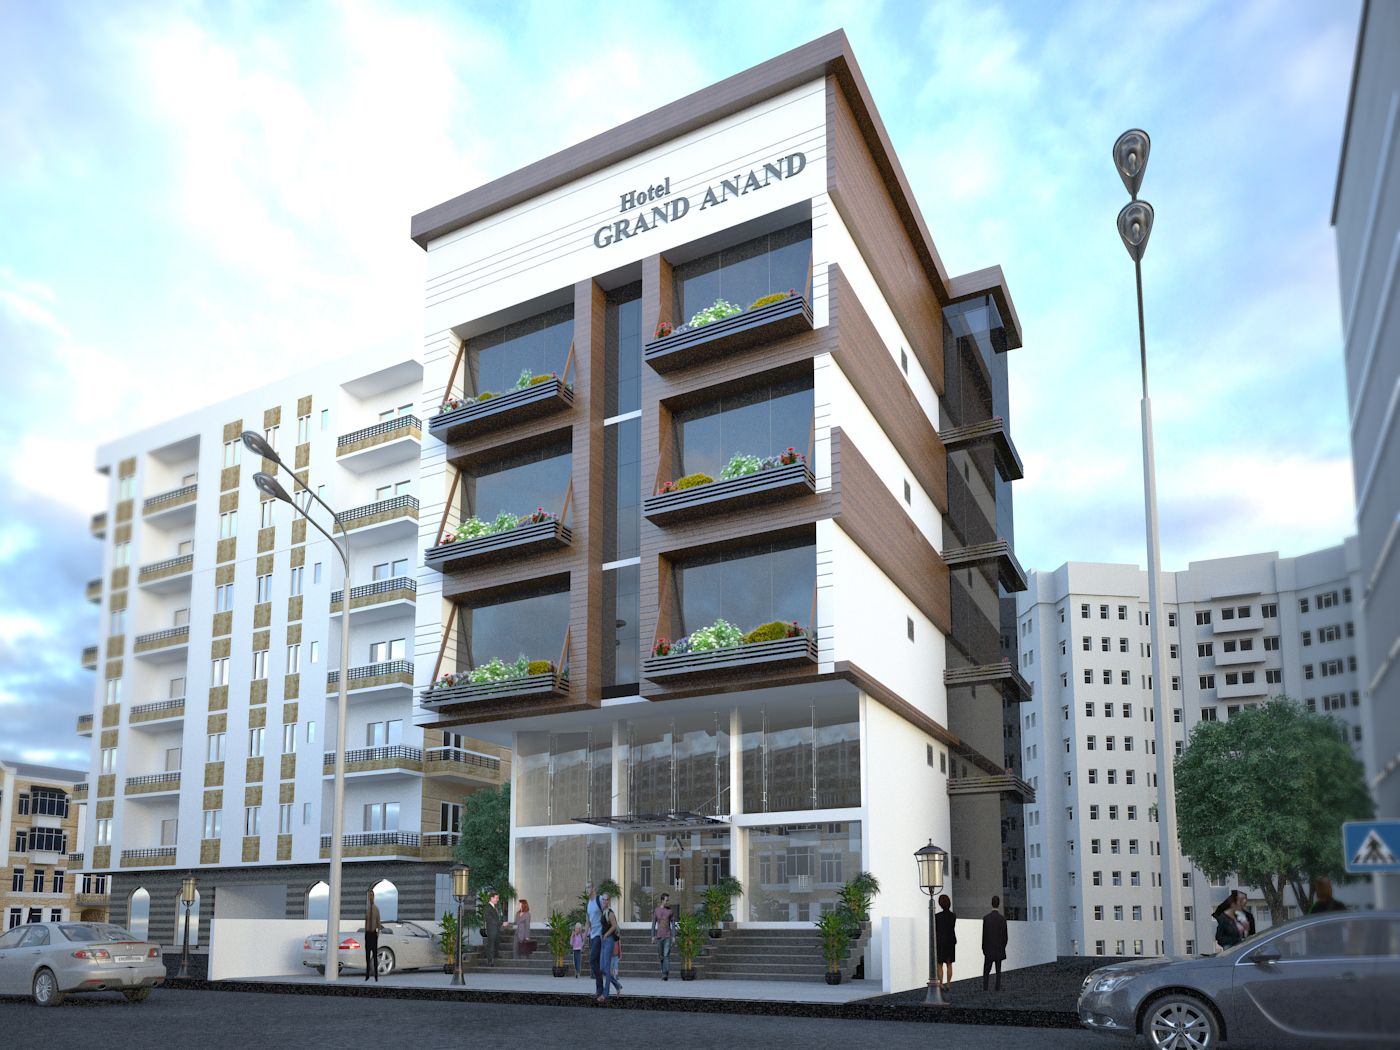 Hotel Exterior Design Hotel Grand Anand Exterior Design Shyam Clement